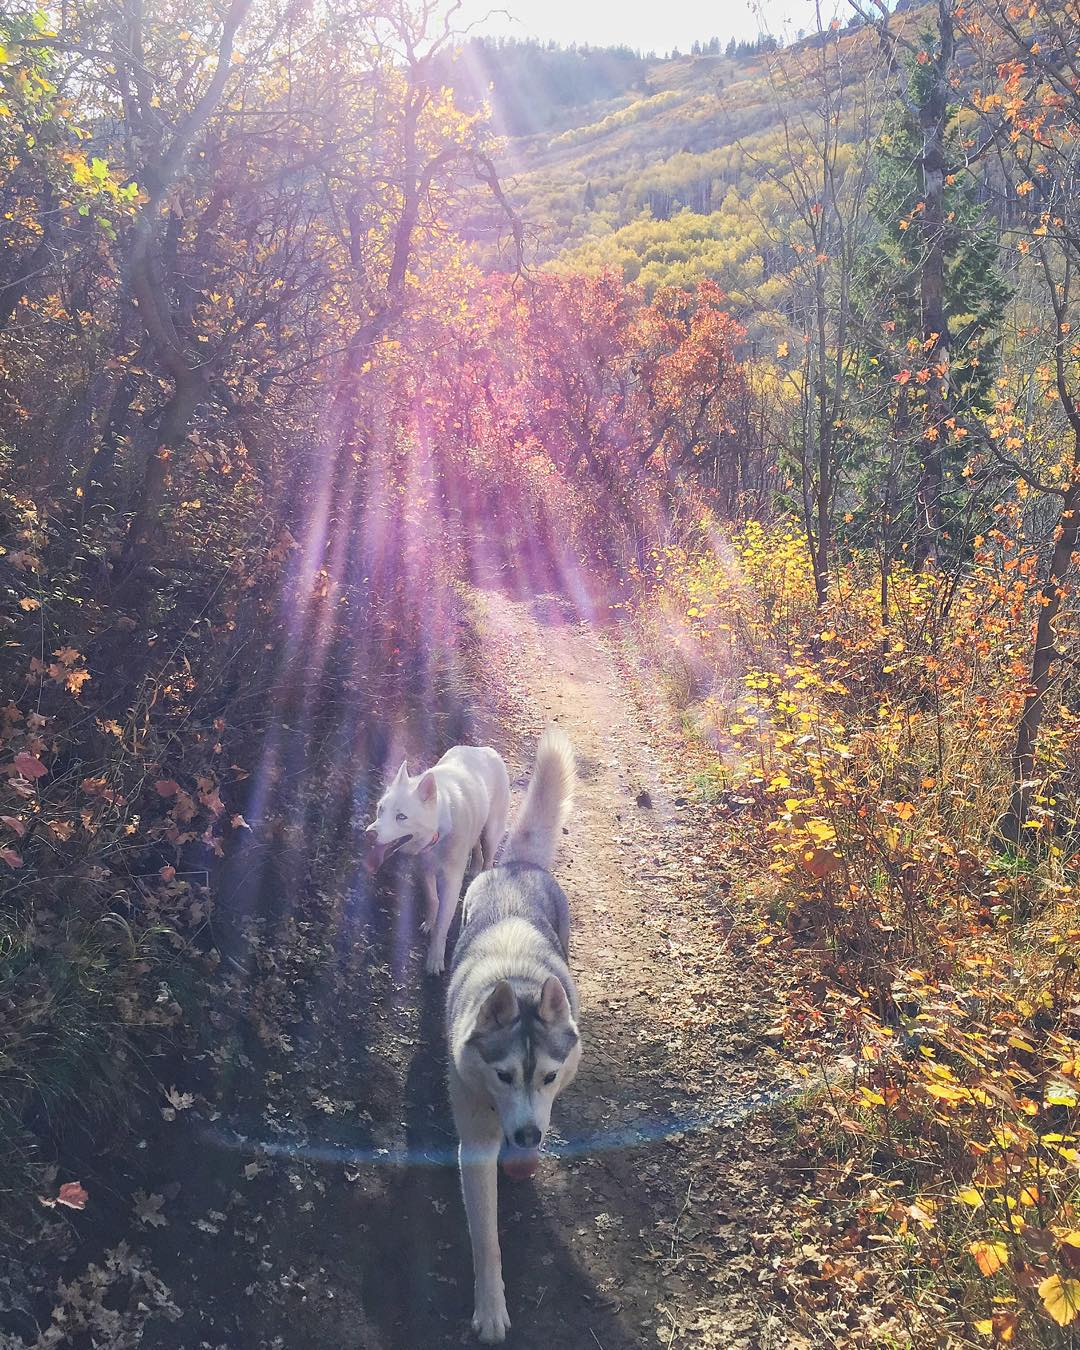 Part of my view during yesterday's hour long bike ride with my wife: our two fur beasts running with us on the #ParkCity mountain biking trails. They keep up pretty well, till we get near the end of our 7 mile ride. #exercisewithfurbeasts...